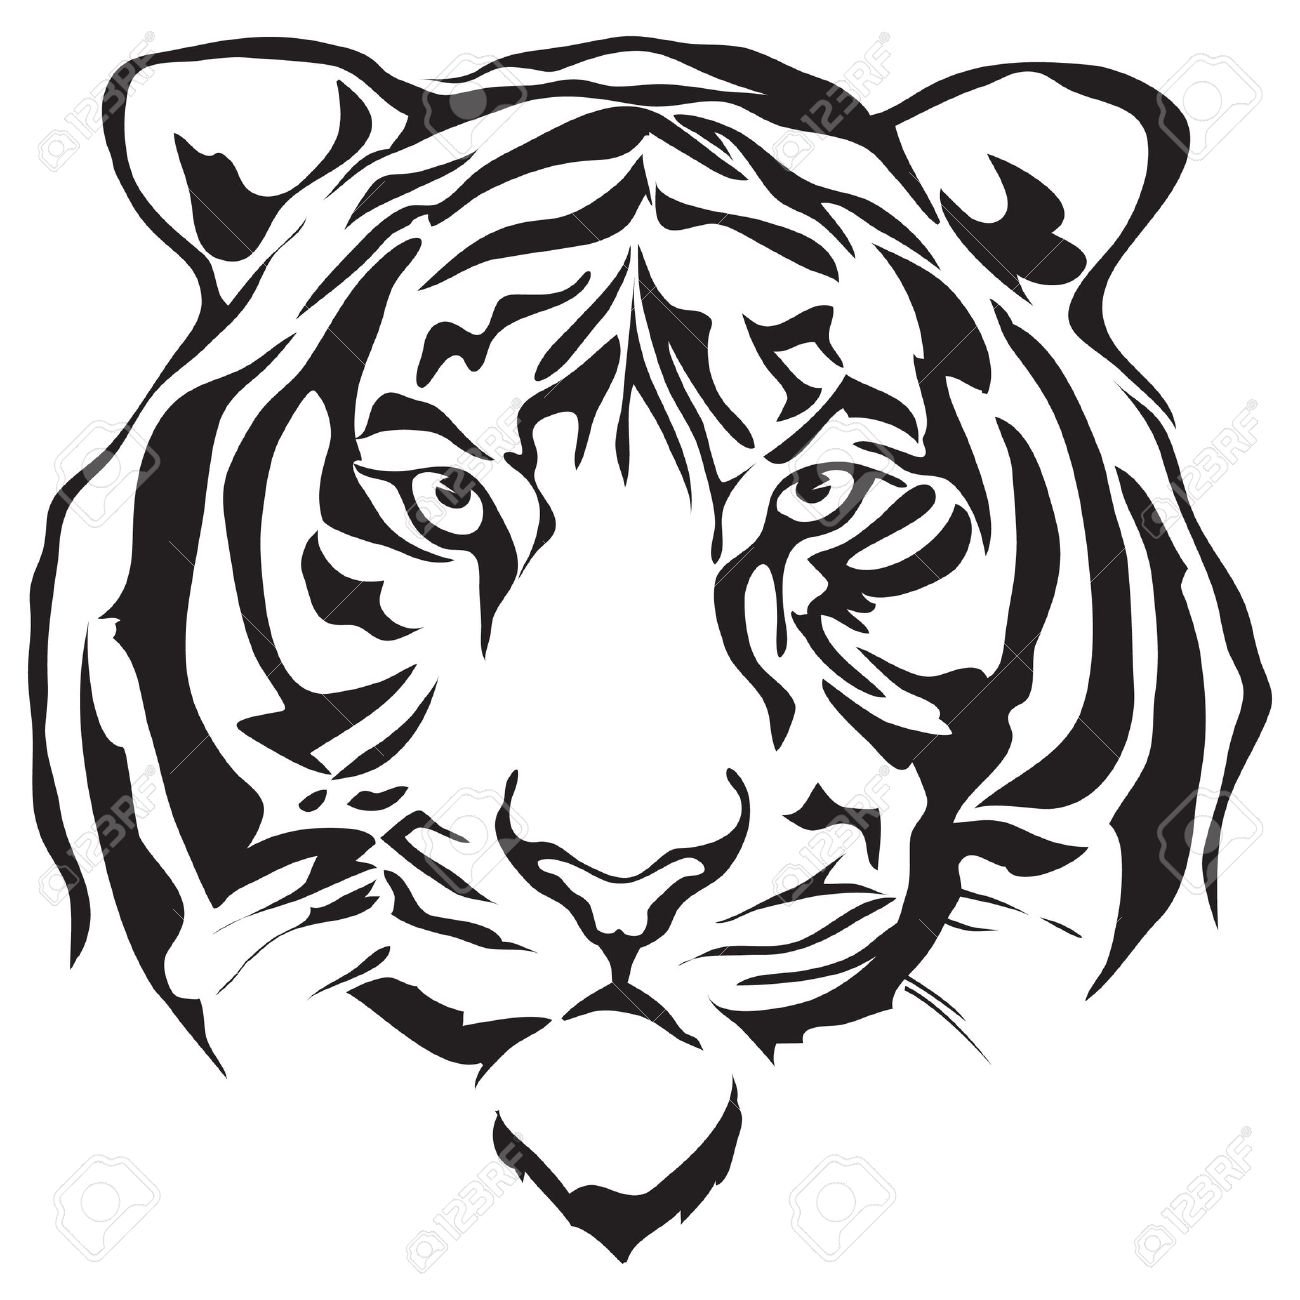 Tiger head clipart black and white 3 » Clipart Station.